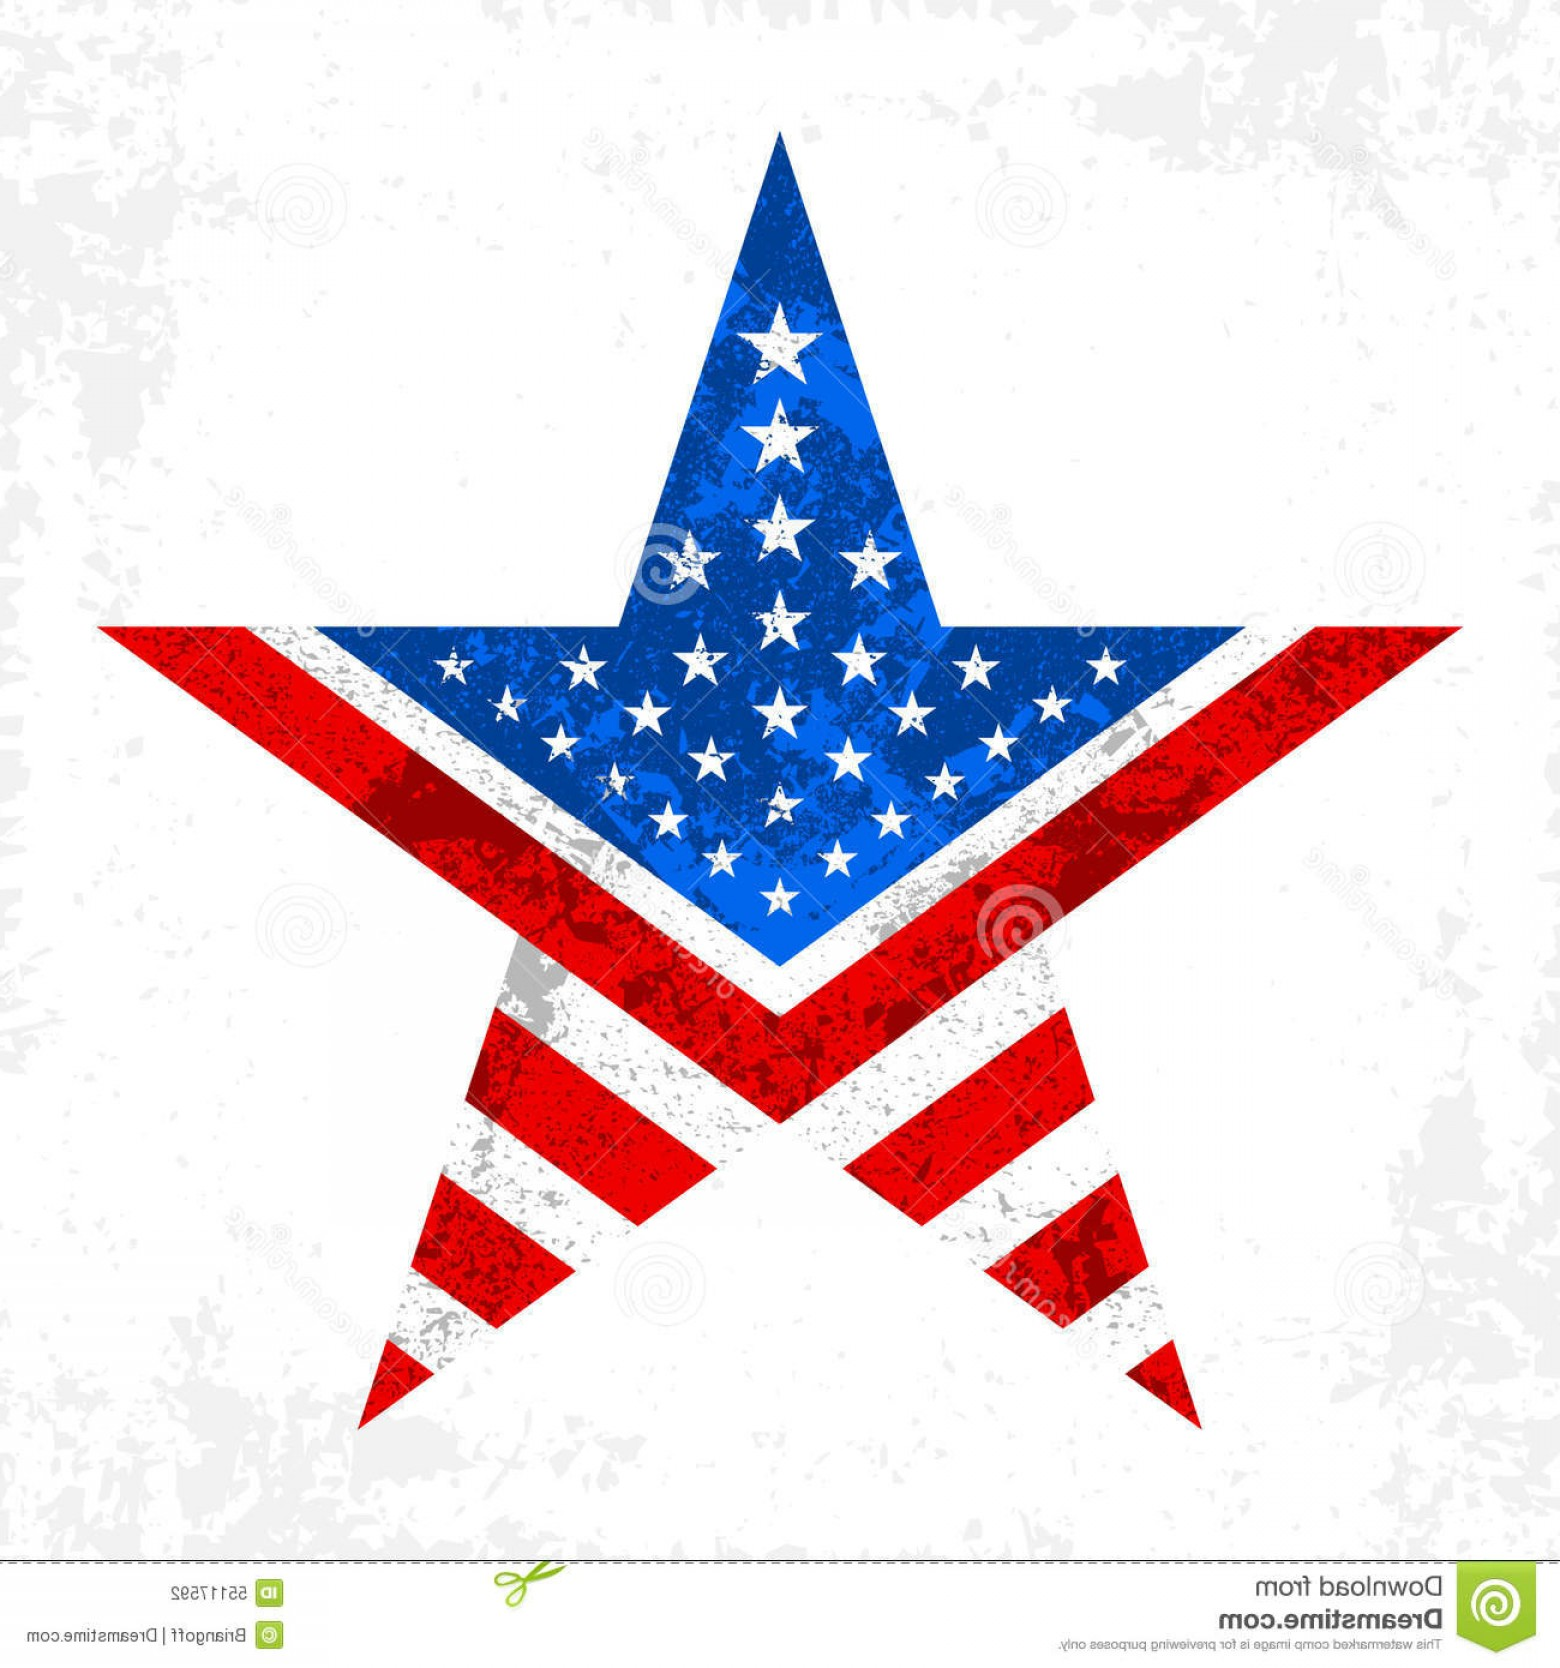 American Flag Stars Only Vector: Stock Illustration America Star Icon Red Blue American Flag Pattern Inside Image